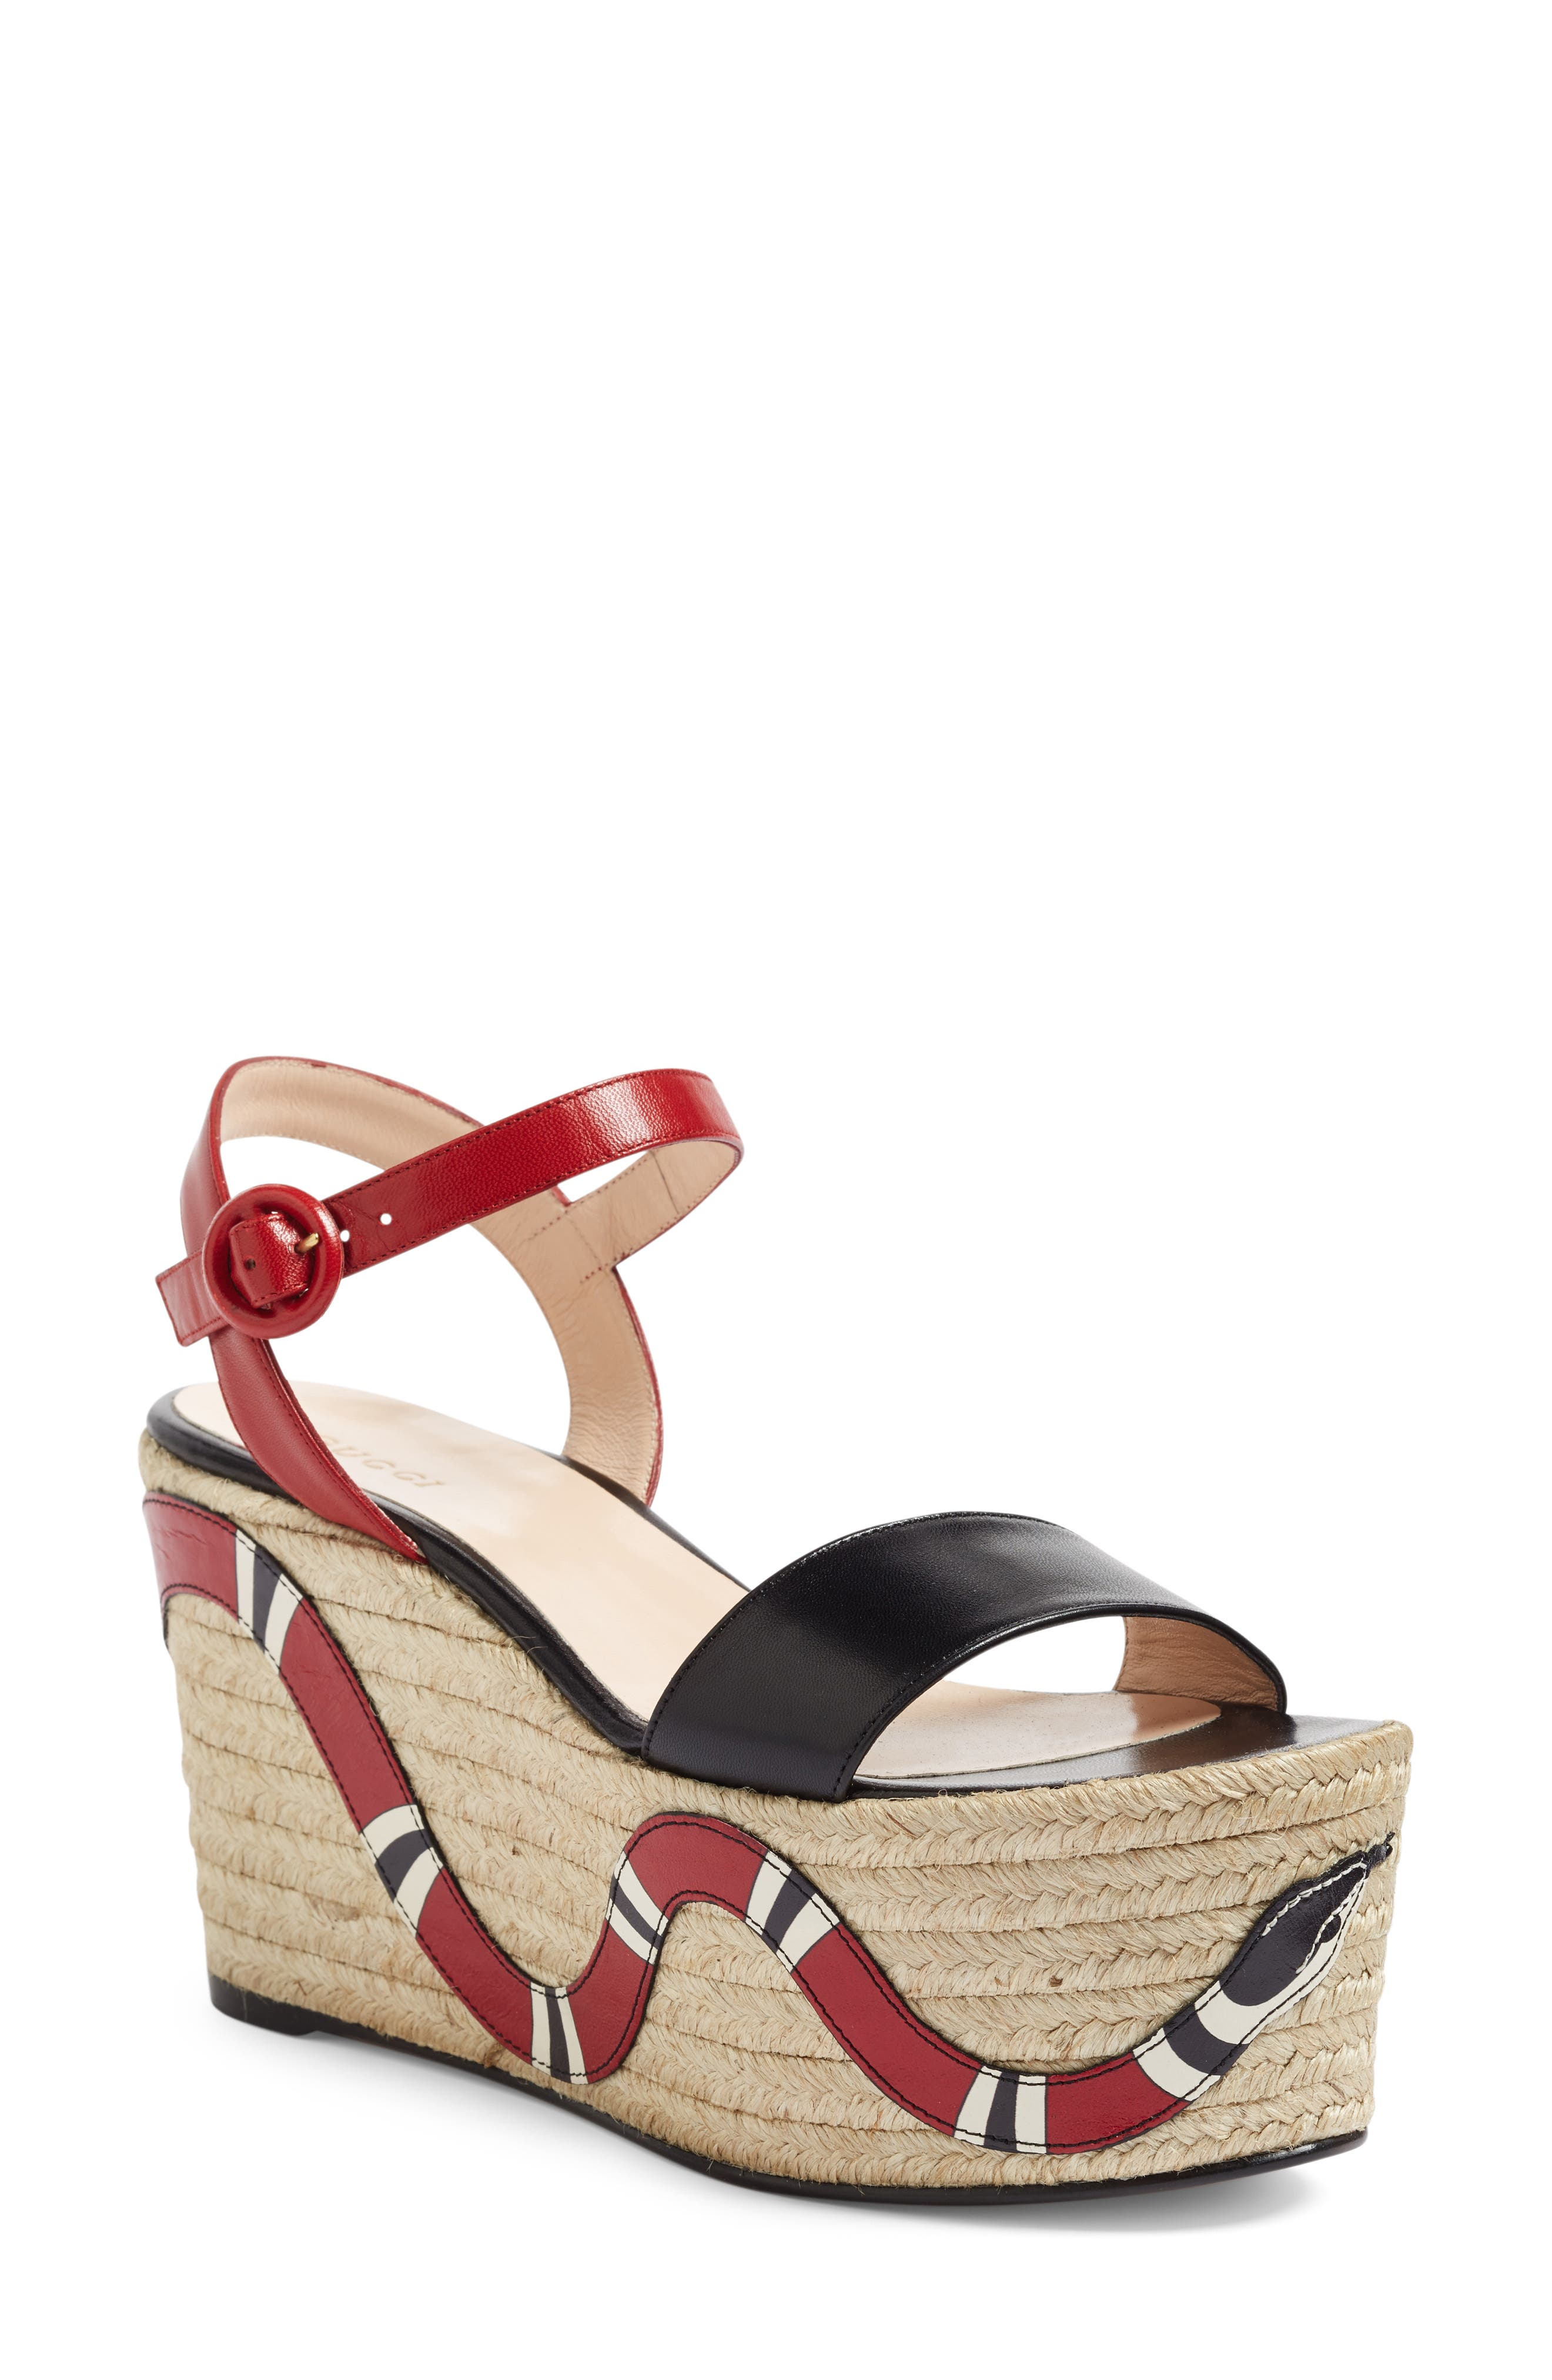 Main Image - Gucci Barbette Espadrille Wedge Sandal (Women)